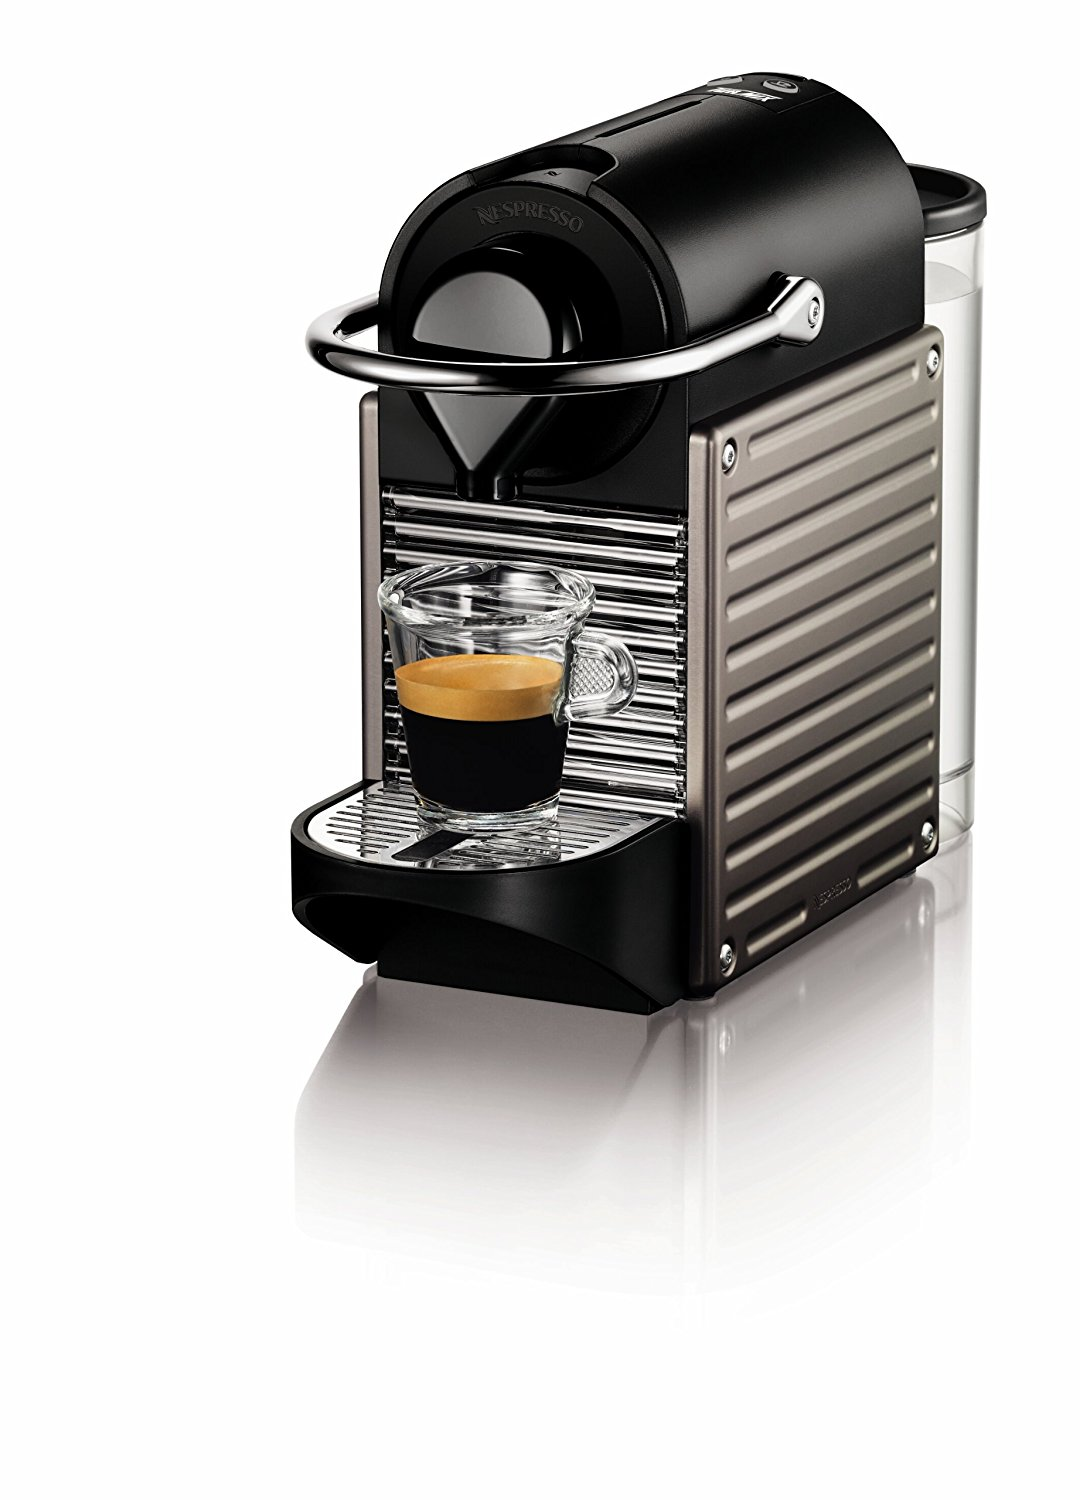 Review of Nespresso Pixie Espresso Maker